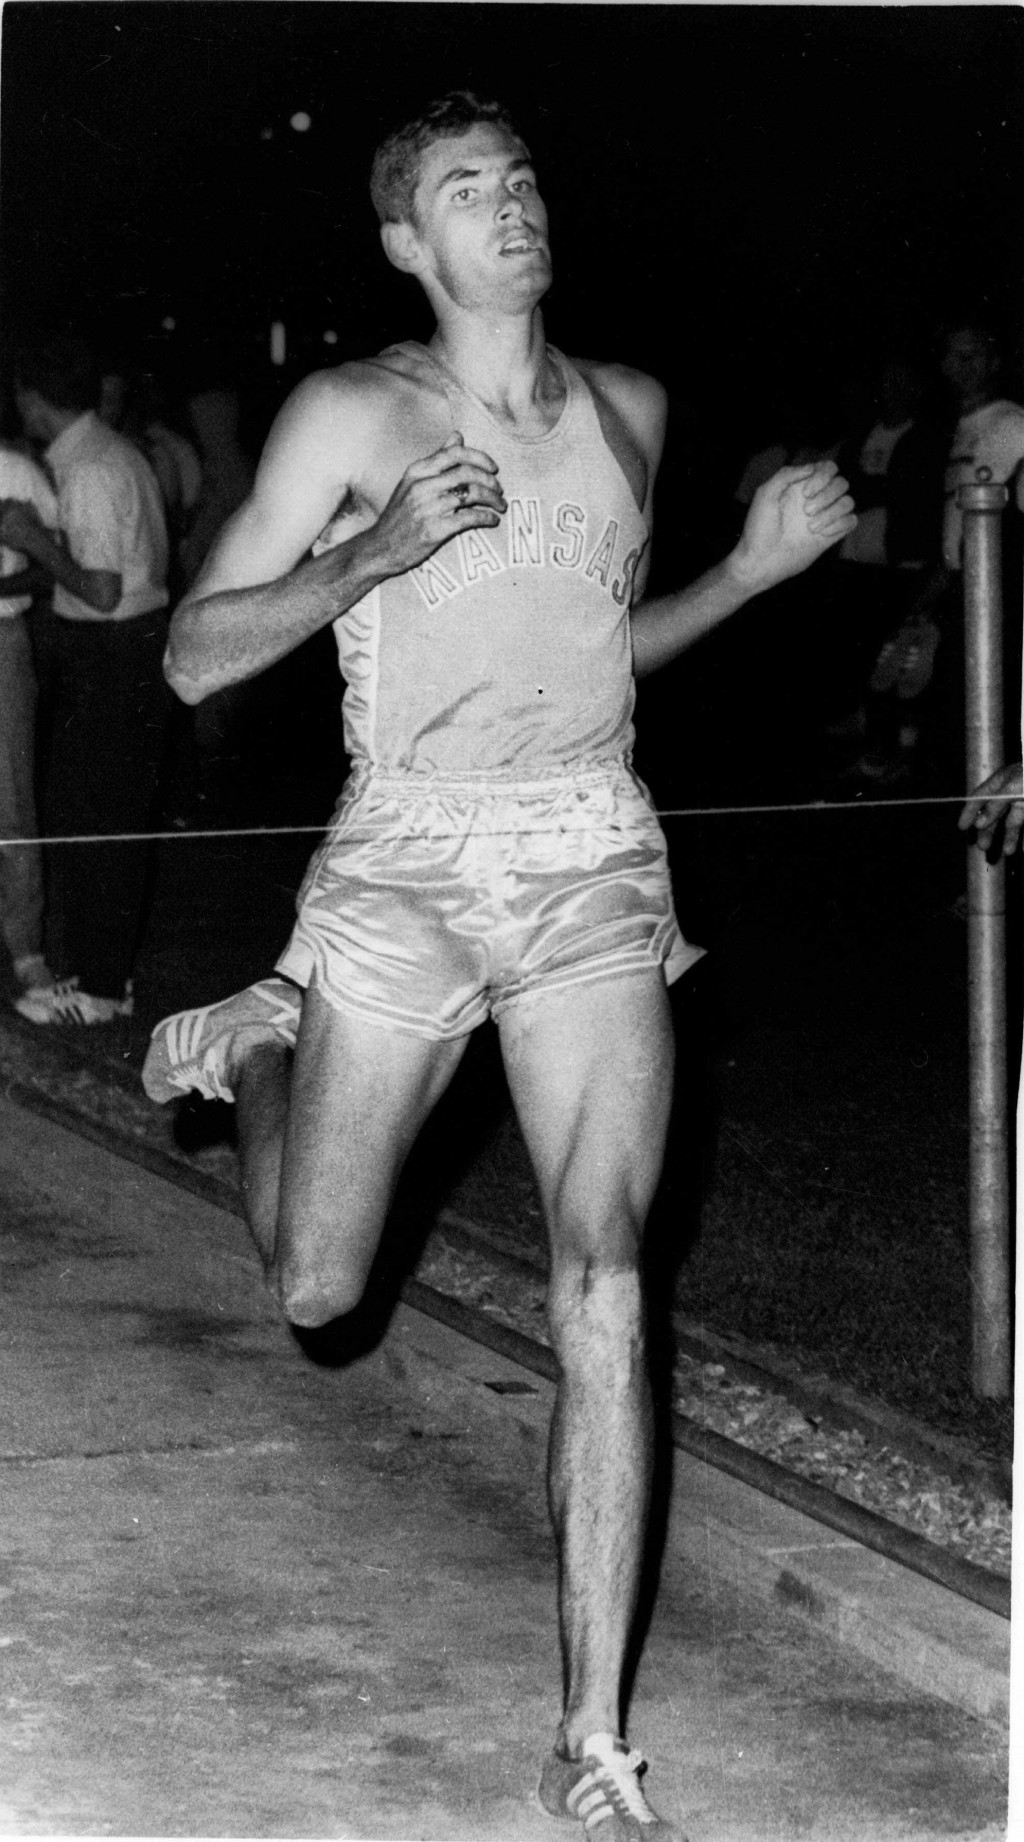 FILE - In this Aug, 10, 1968 file photo, Jim Ryun, back in competition after an attack of Mononucleosis sidelined him, sprints to victory in the Pre-O...